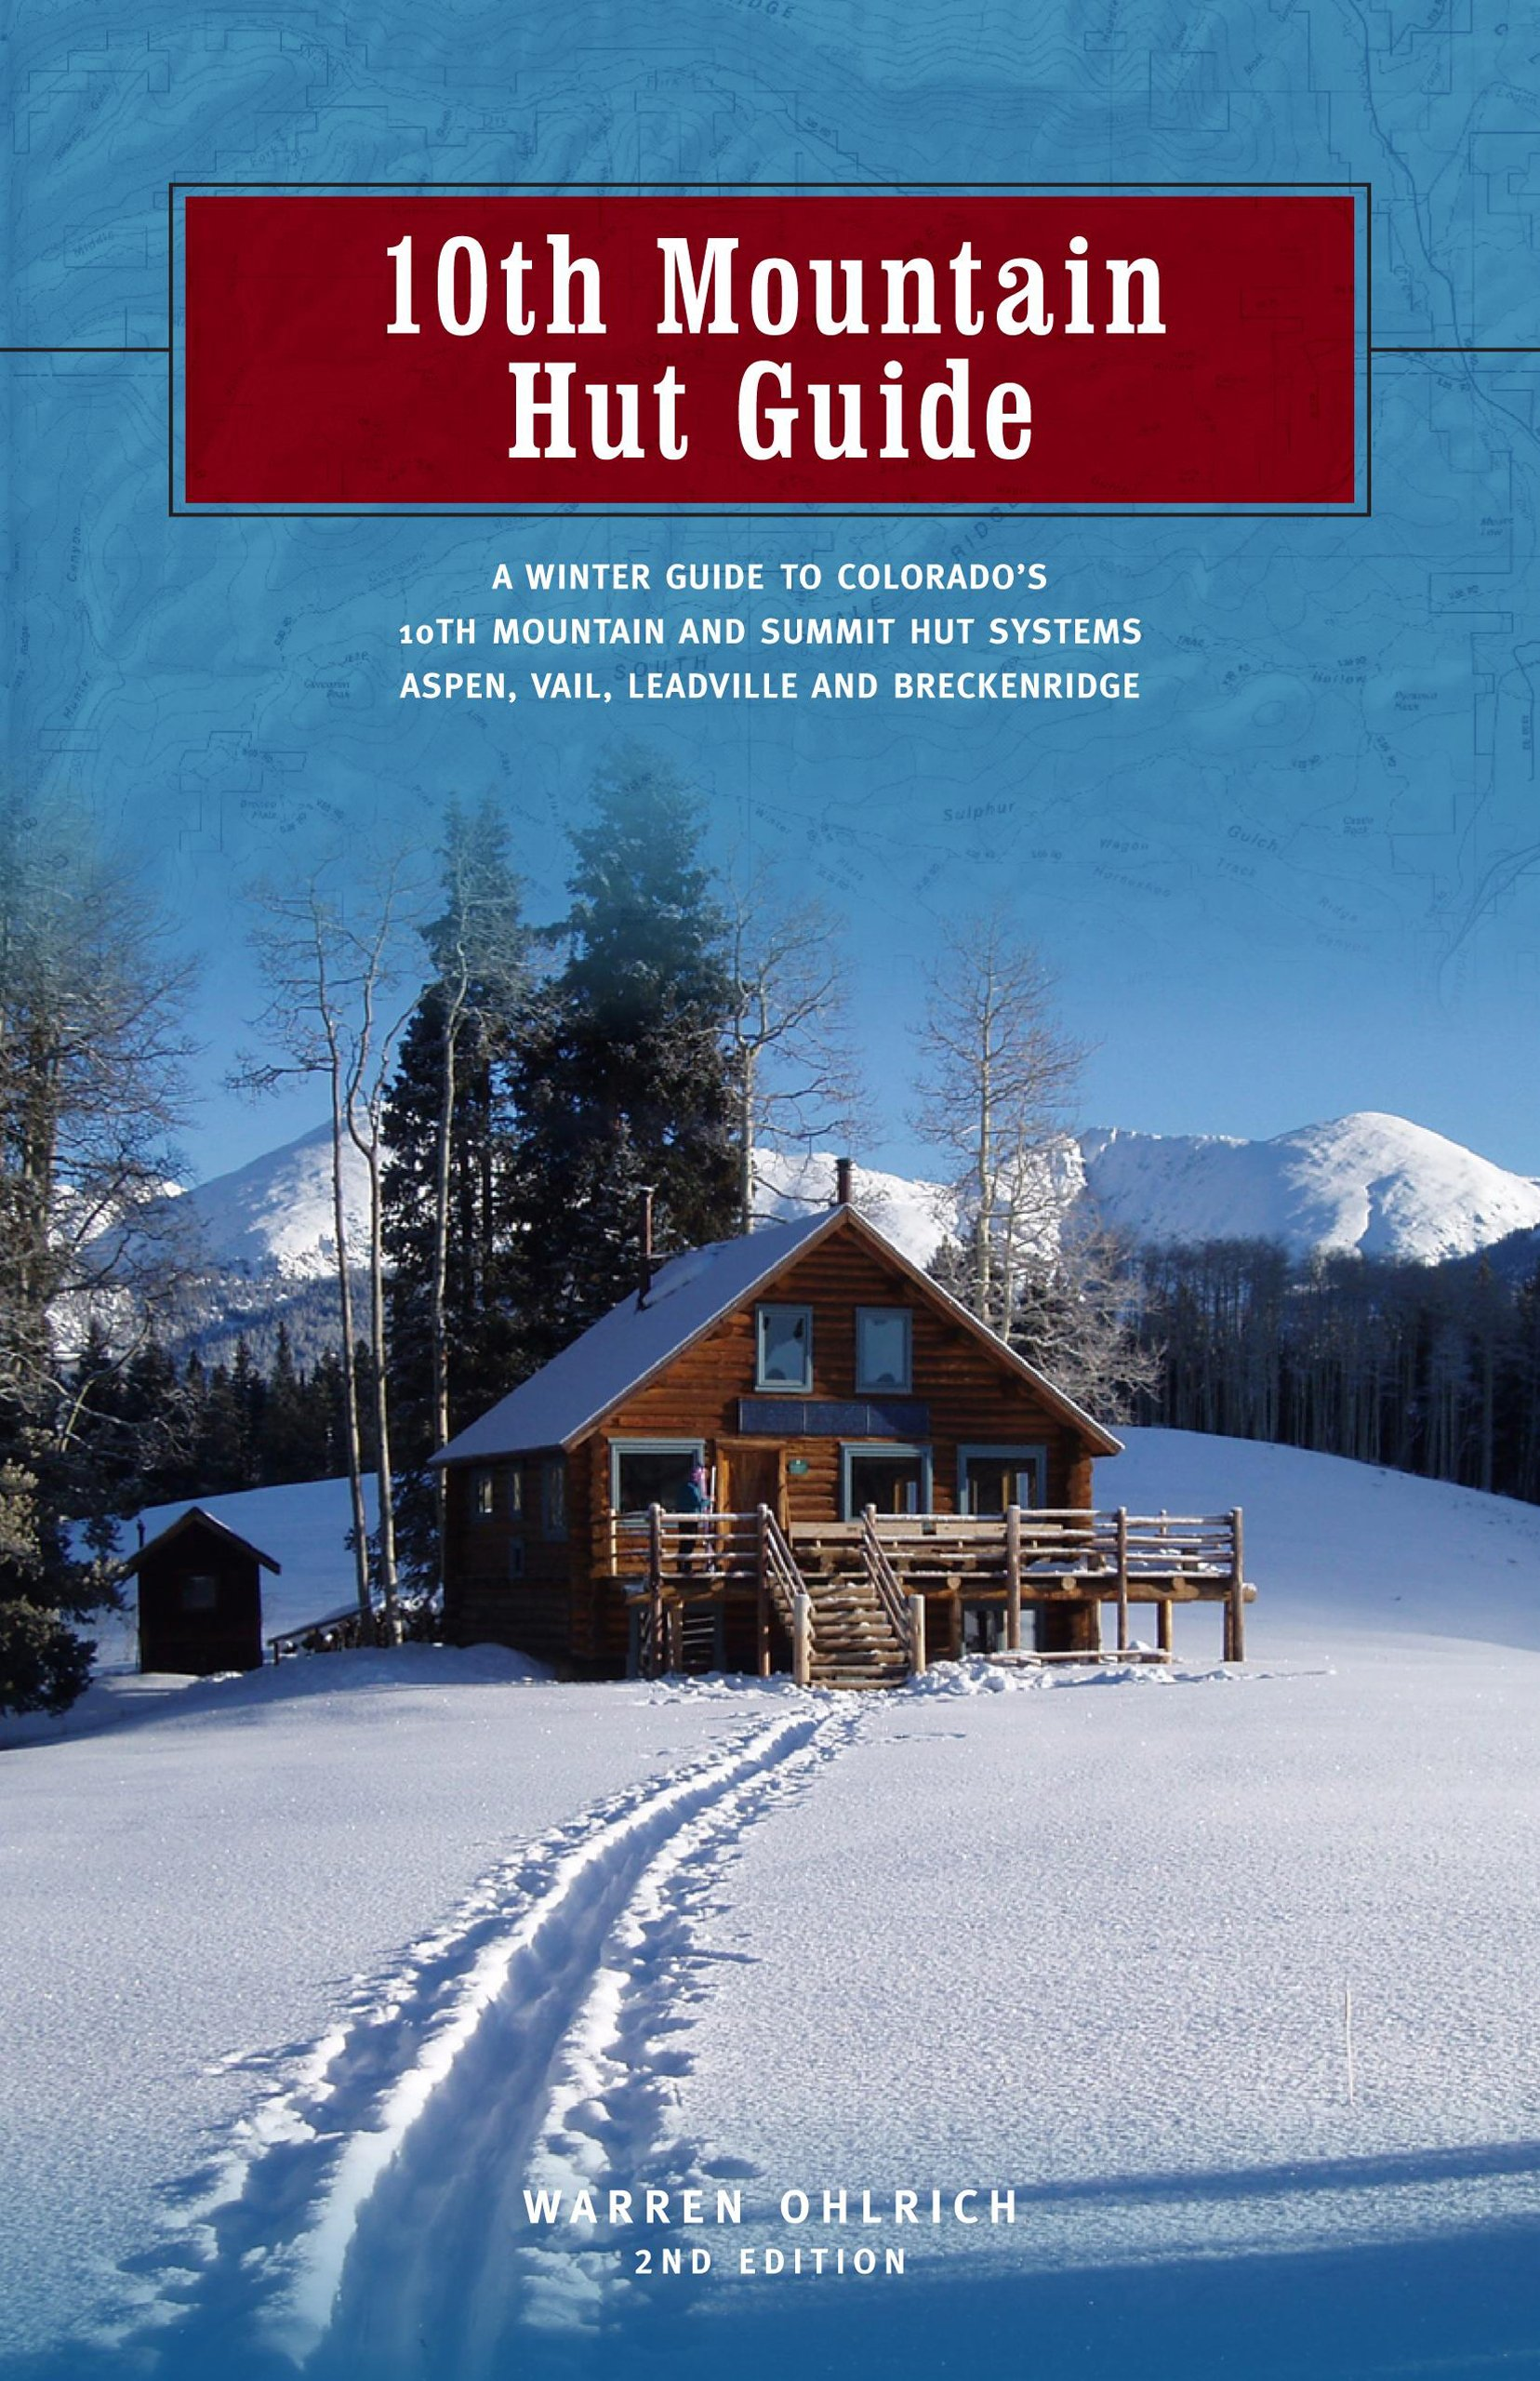 10th Mountain Hut Guide, 2nd: A Winter Guide to Colorado's Tenth Mountain and Summit Hut Systems near Aspen, Vail, Leadville and Breckenridge by Globe Pequot Press